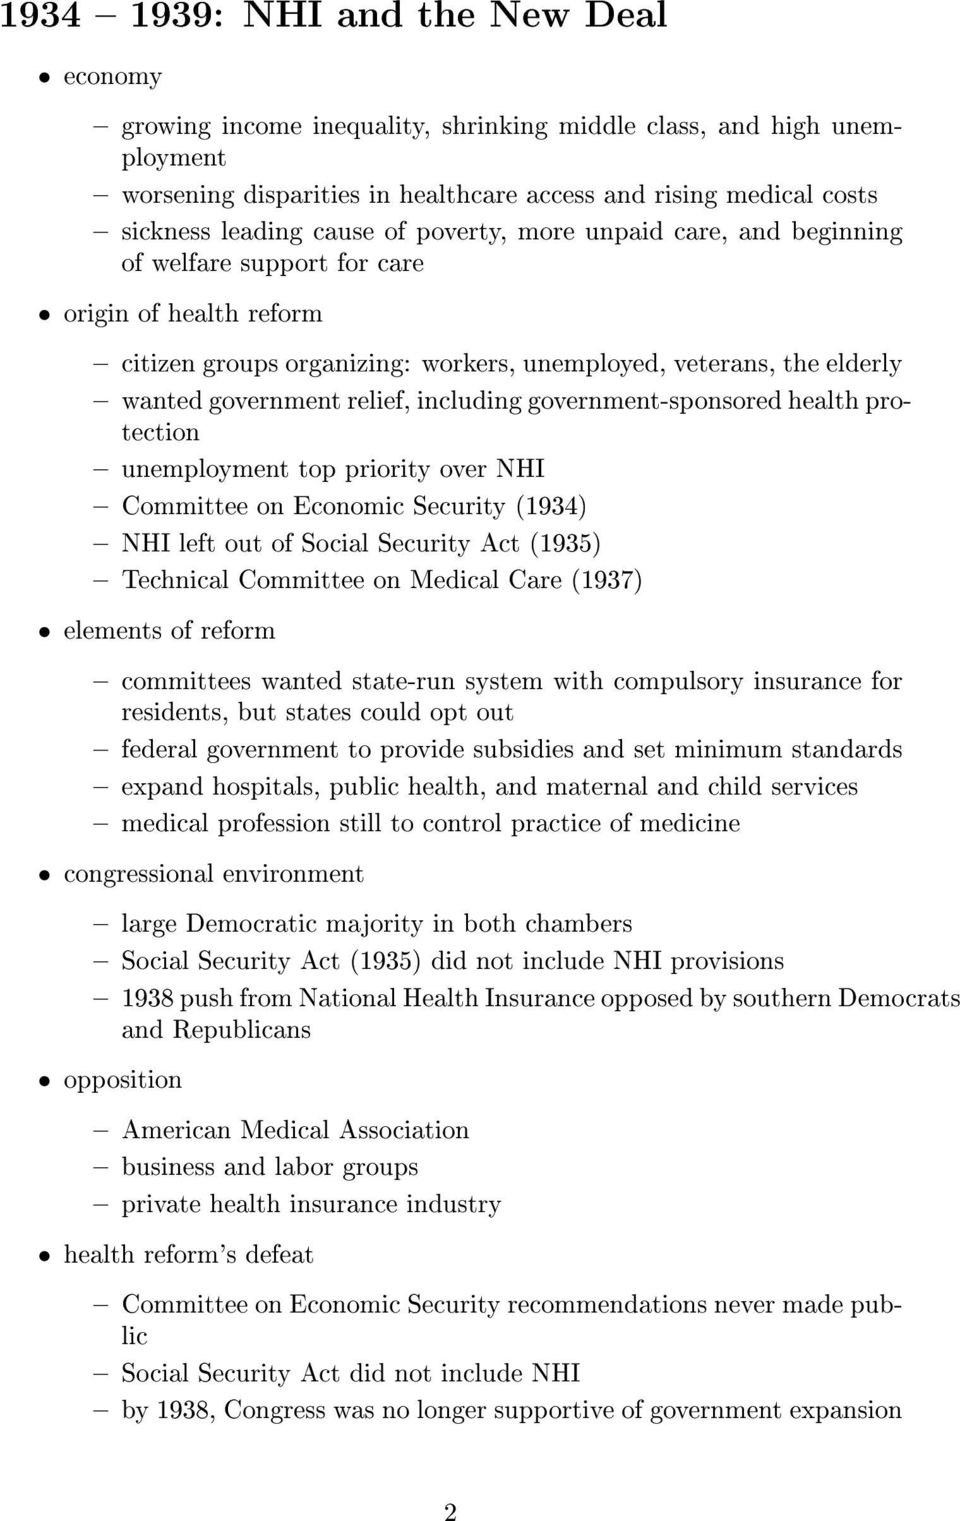 including government-sponsored health protection unemployment top priority over NHI on Economic Security (1934) left out of Social Security Act (1935) Committee on Medical Care (1937) committees